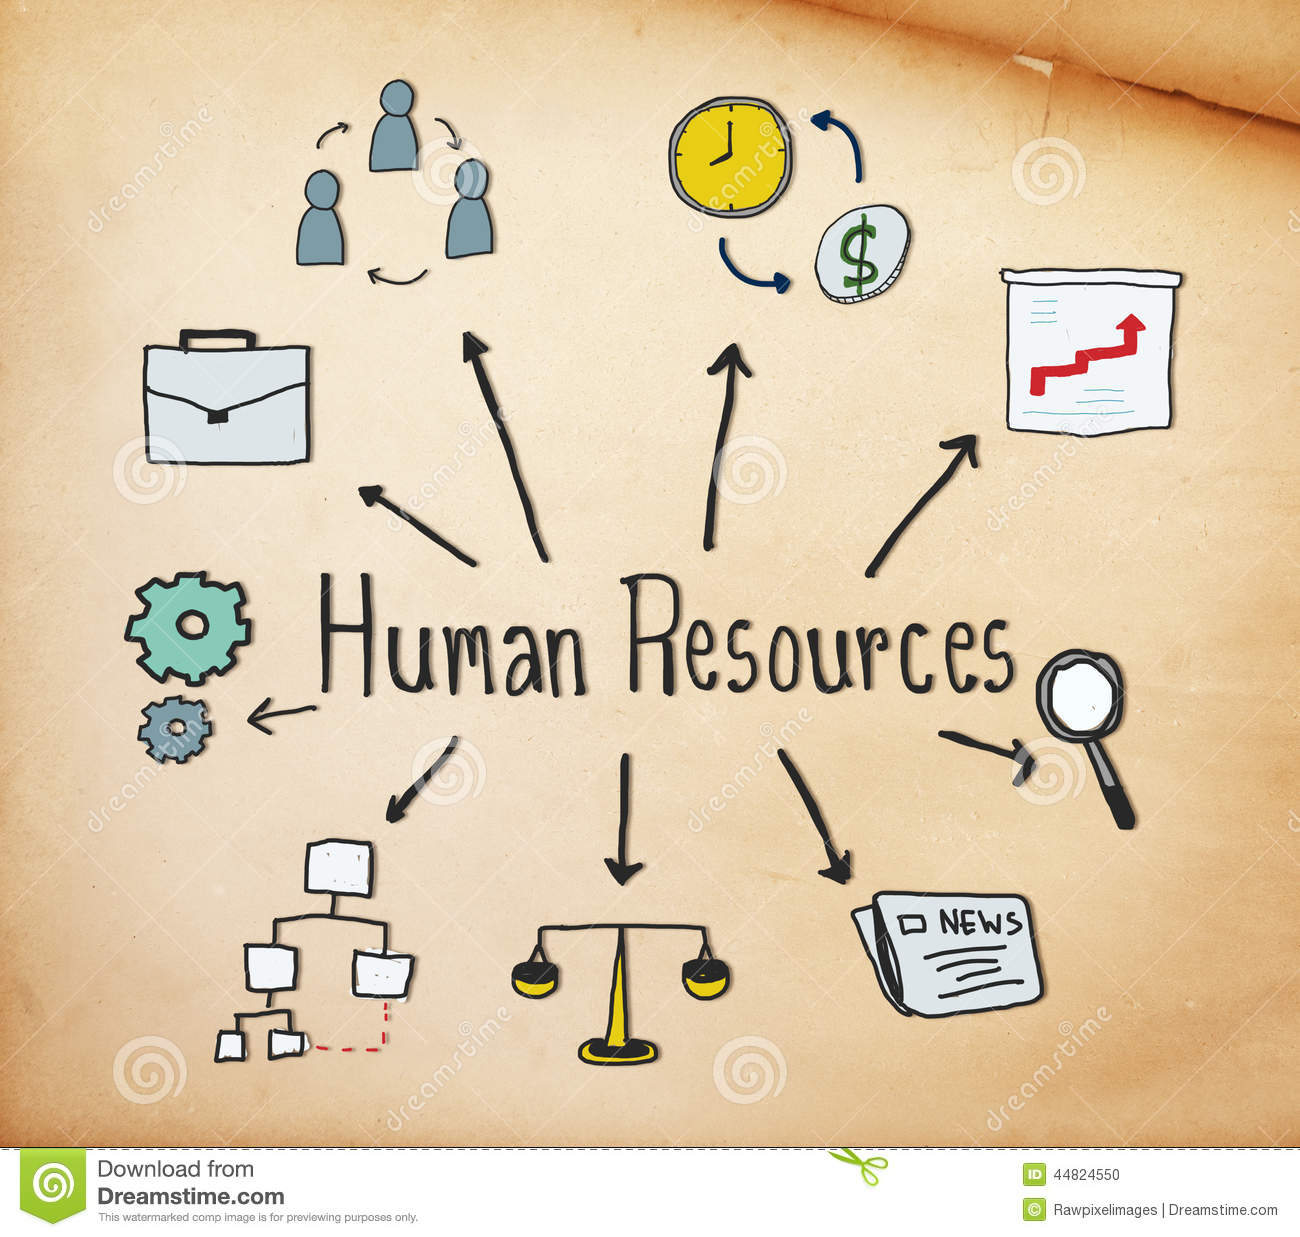 Human resources symbols on an old paper stock illustration human resources symbols on an old paper biocorpaavc